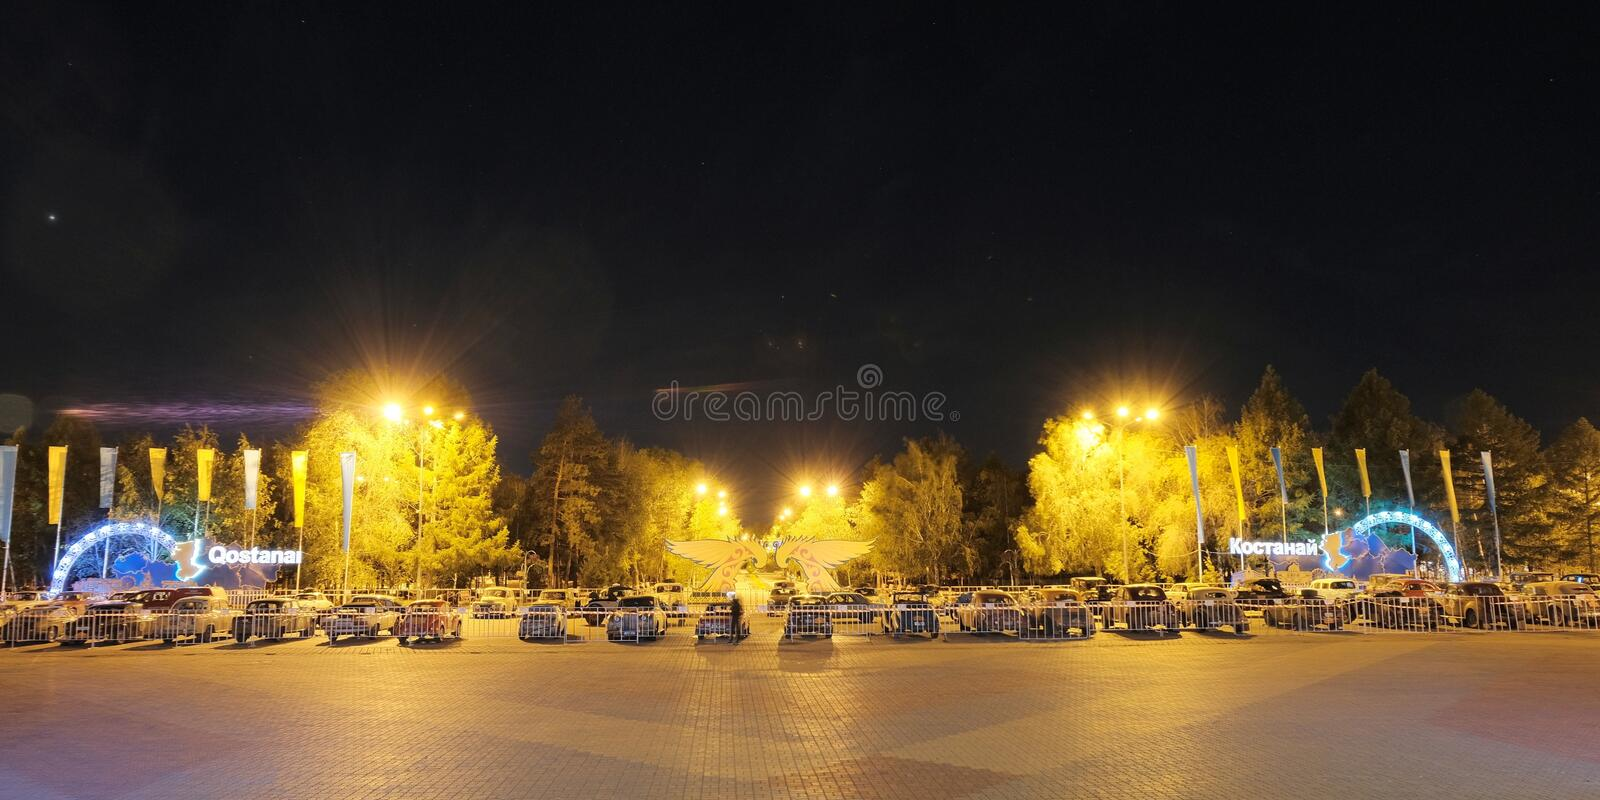 Kazakhstan, 19-06-19, Night. Night. Vintage cars in the town square. The inscription name of the city: Kostanay. Parking retro. Kazakhstan, Kostanay, 19-06-19 stock photography